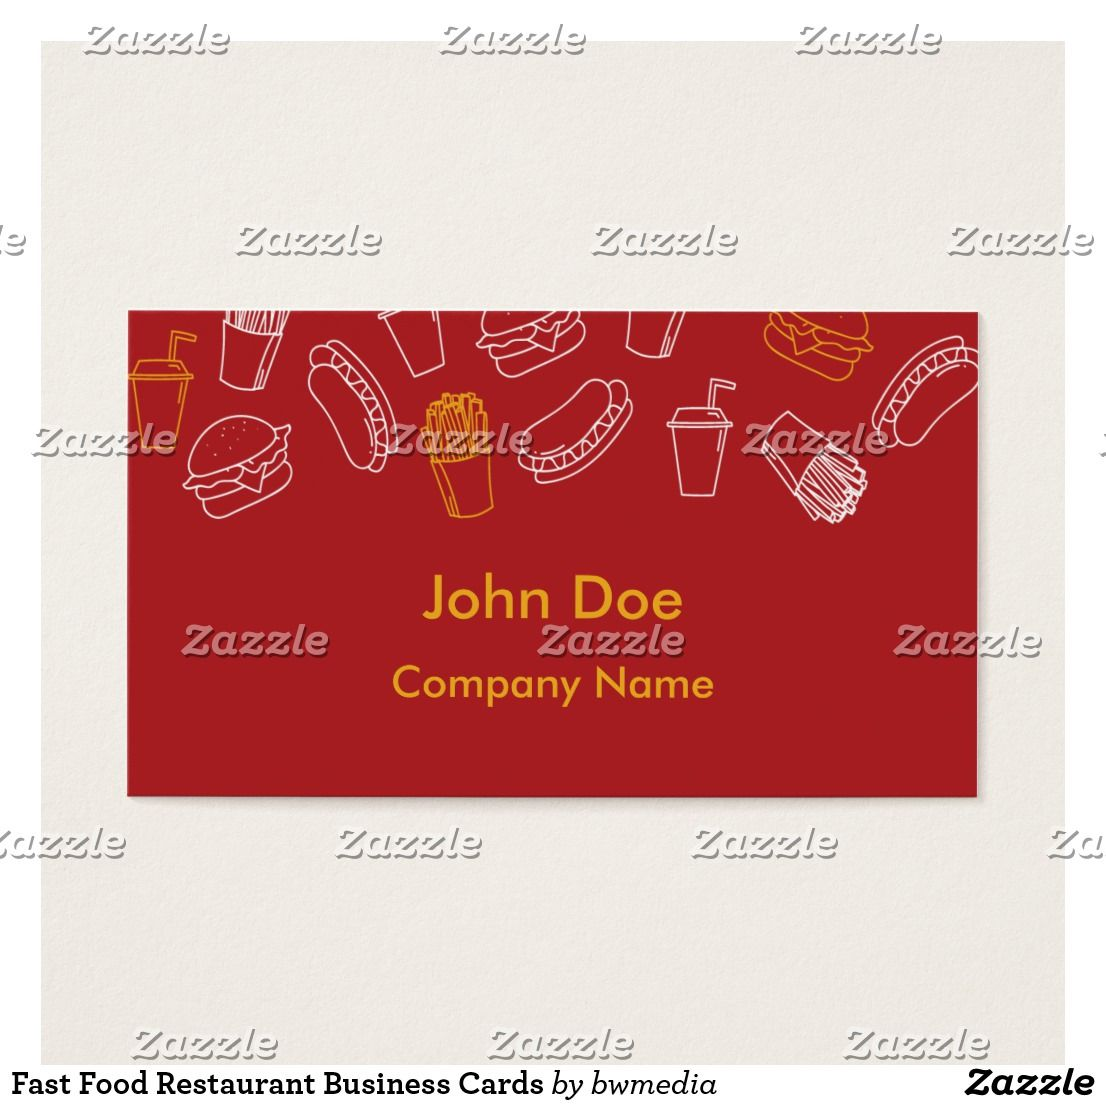 Fast Food Restaurant Business Cards | Business cards